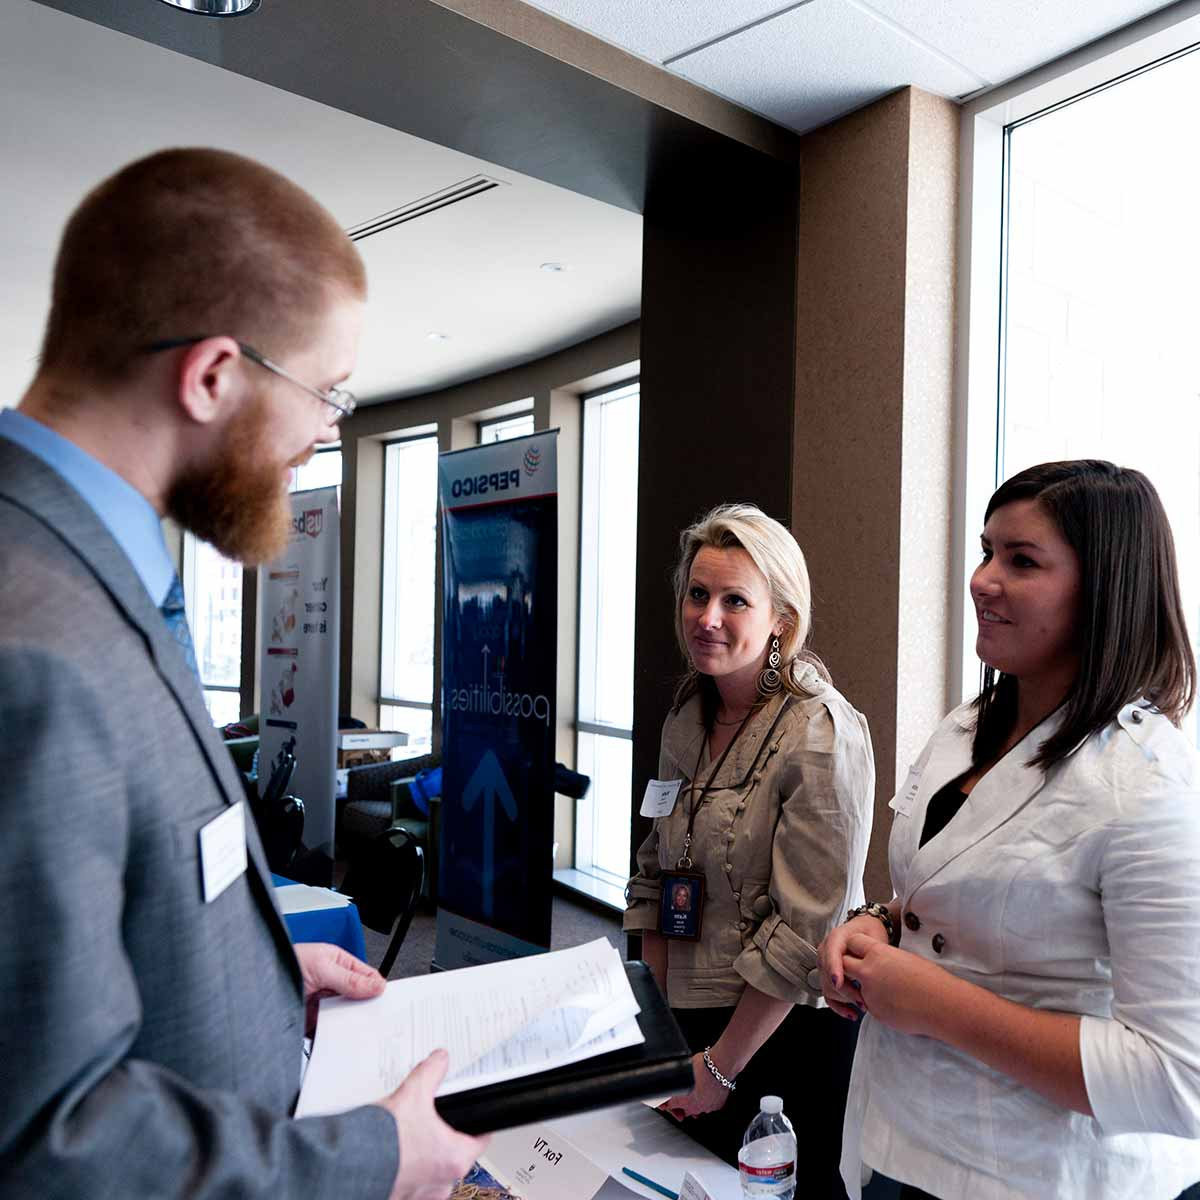 MBA students participating in the Opus College of Business MBA Career Fair in Schulze Hall in Minneapolis on Friday, April 8, 2011.